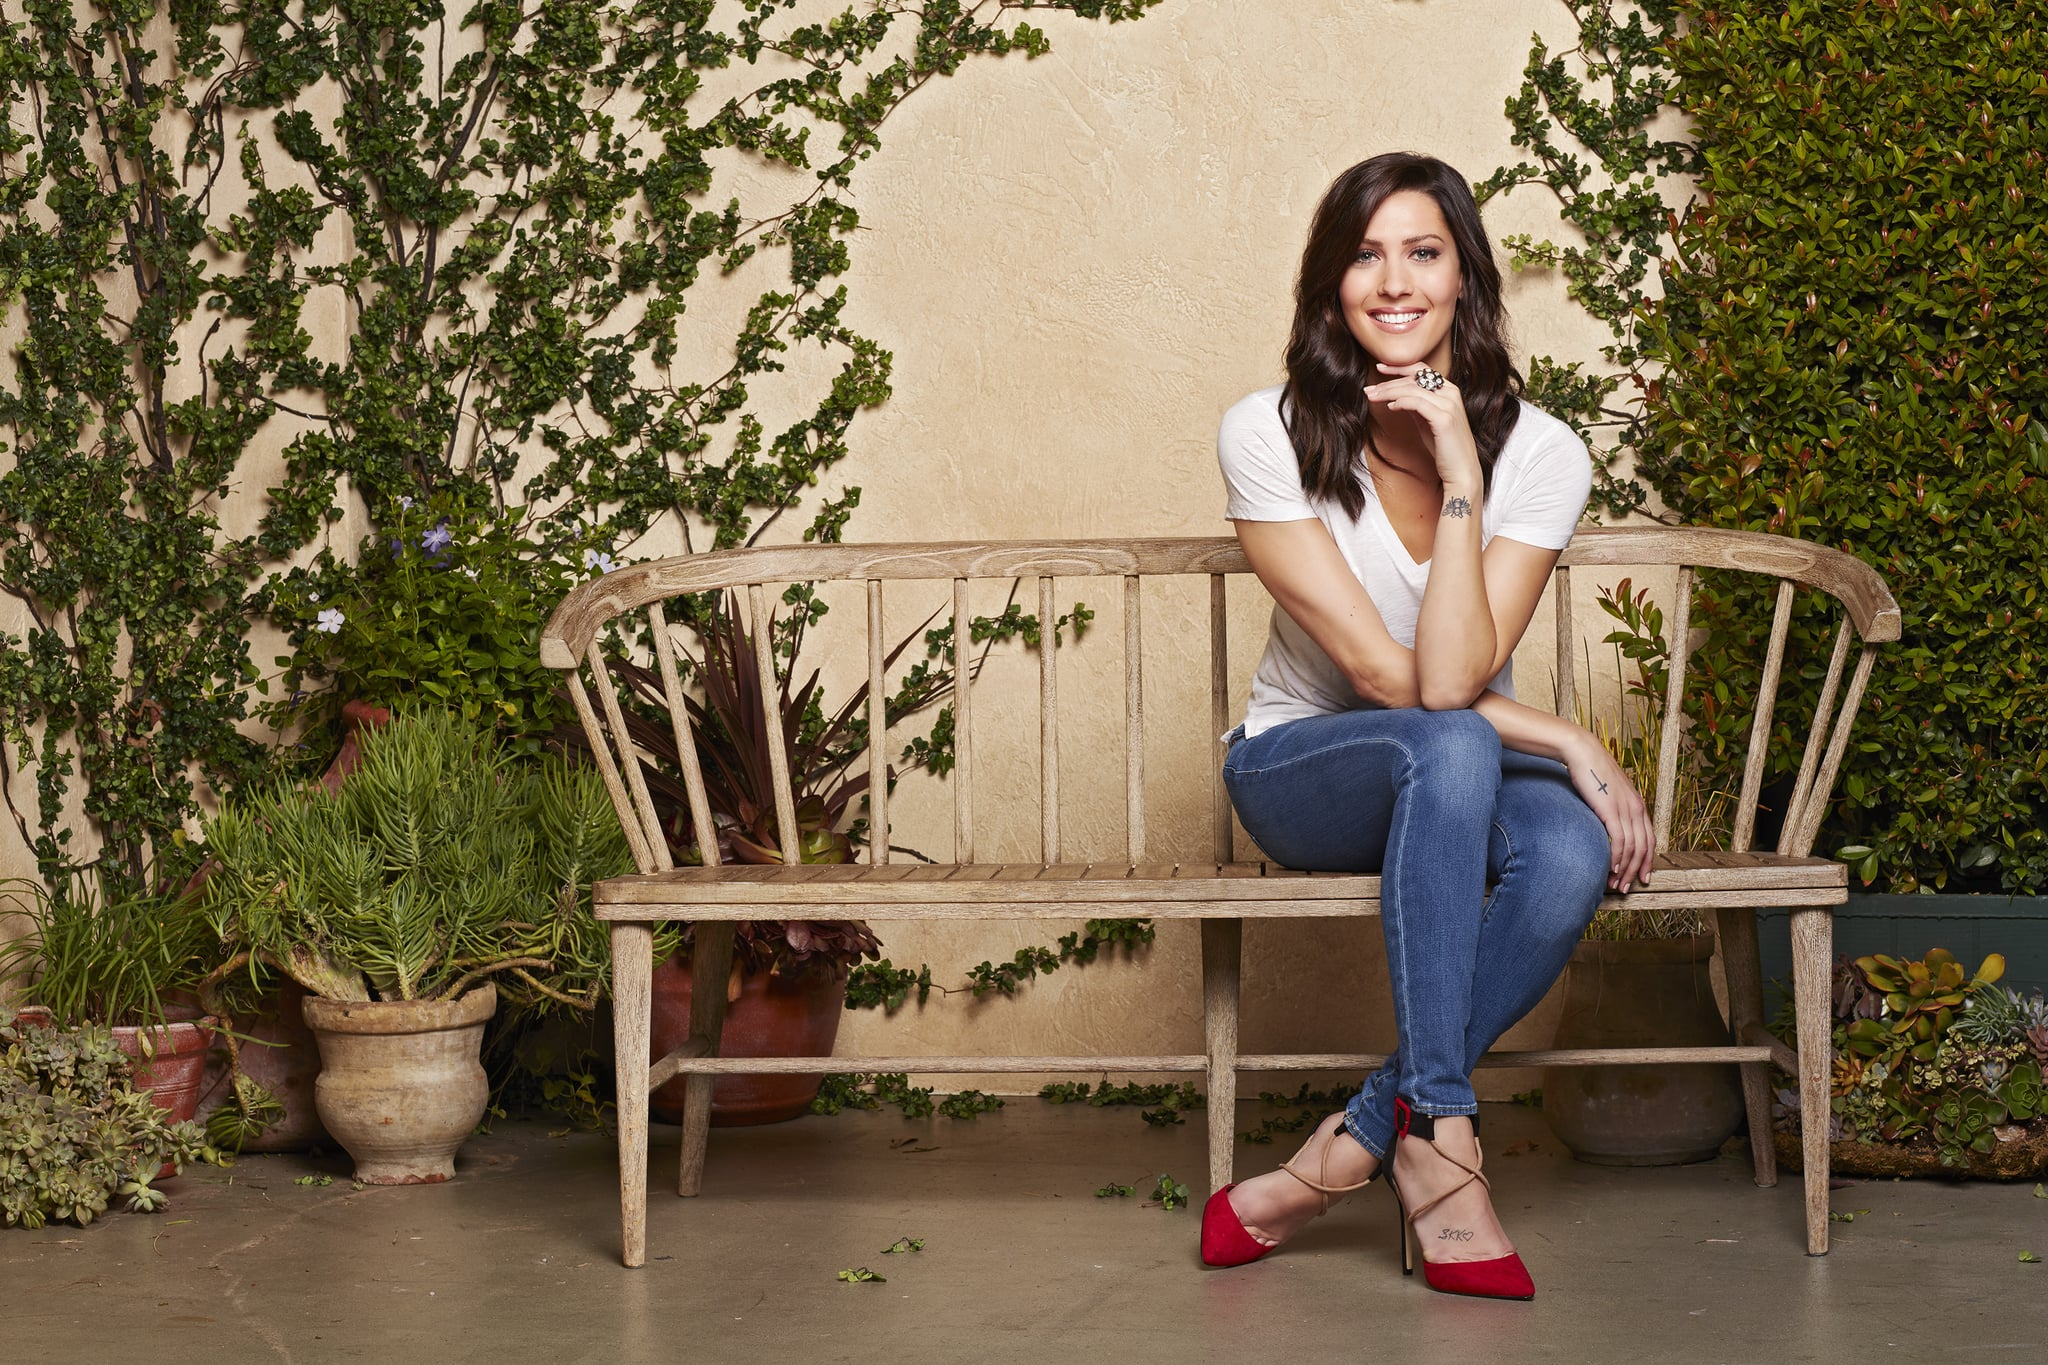 THE BACHELORETTE - The gut-wrenching finish to Becca Kufrin's romance with Arie Luyendyk Jr. left Bachelor Nation speechless. In a change of heart, Arie broke up with America's sweetheart just weeks after proposing to her - stealing her fairytale ending and her future. Now, the humble fan favorite and girl next door from Minnesota returns for a second shot at love, starring on